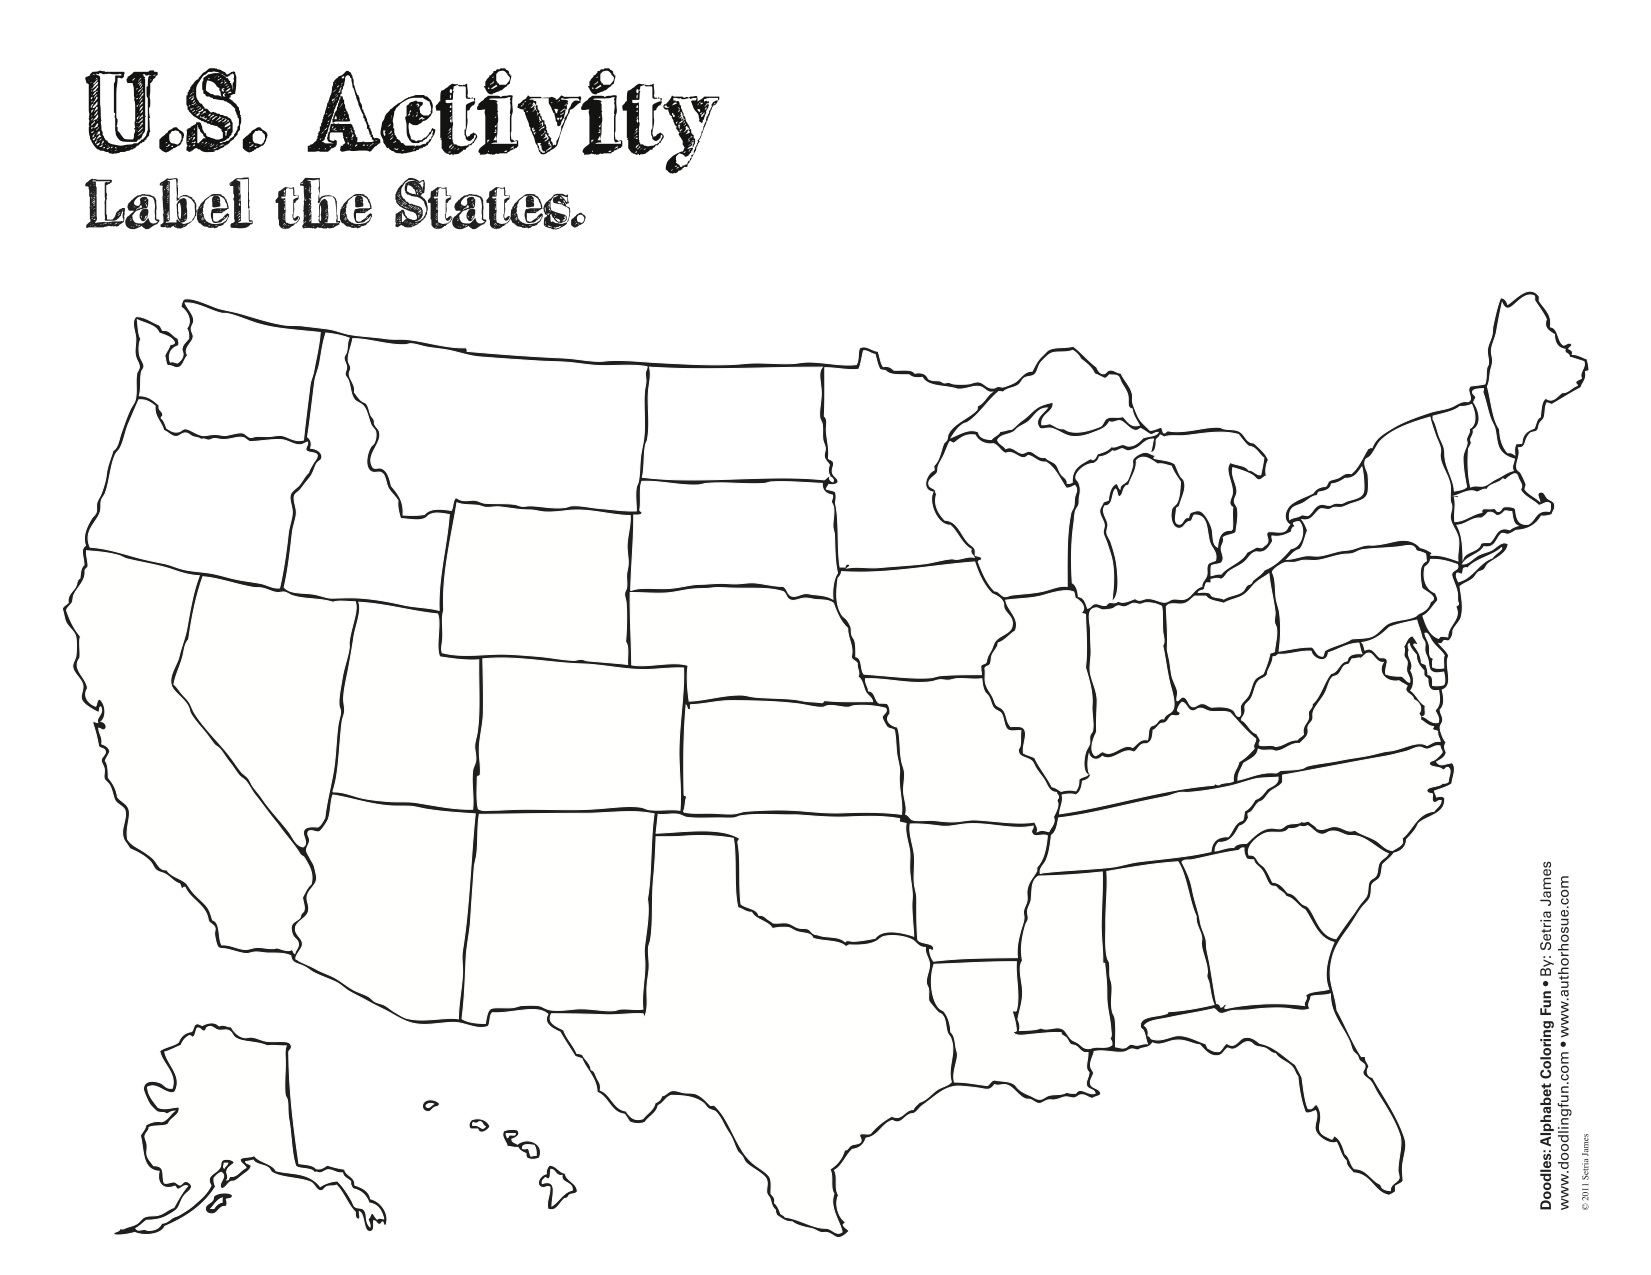 Hilaire image intended for blank printable map of the united states